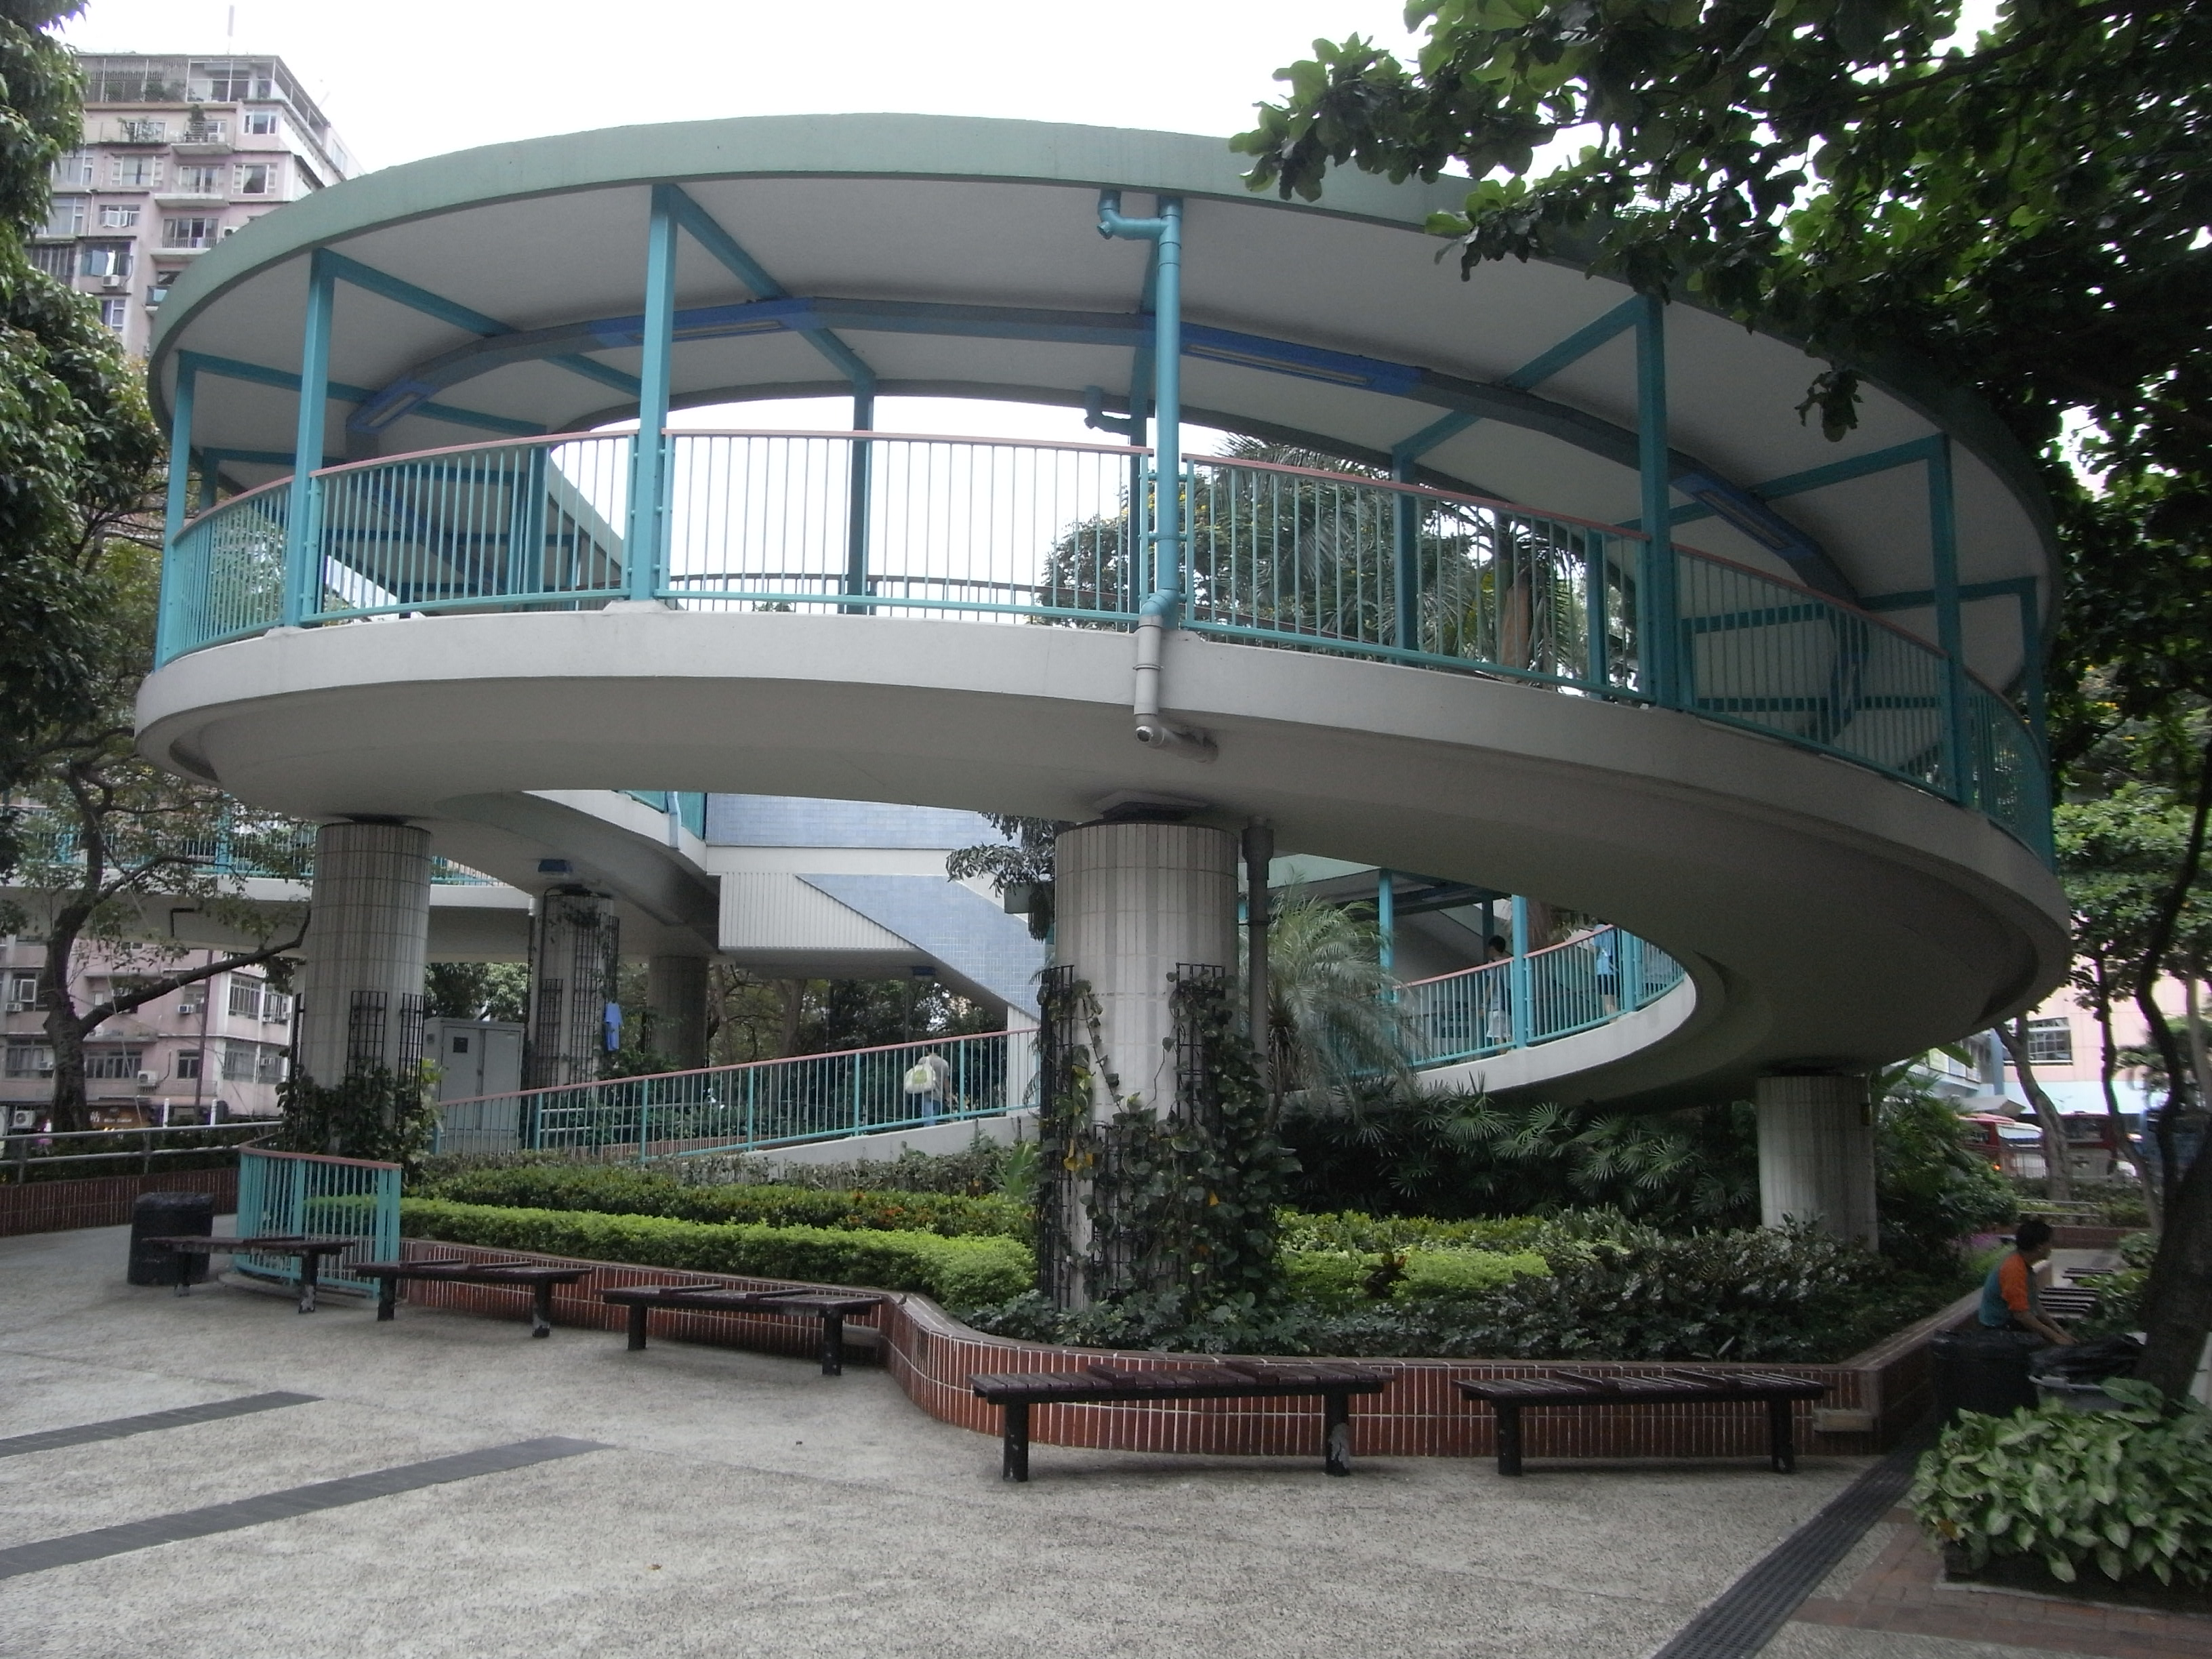 Granville Road Spiral ramp footbridge